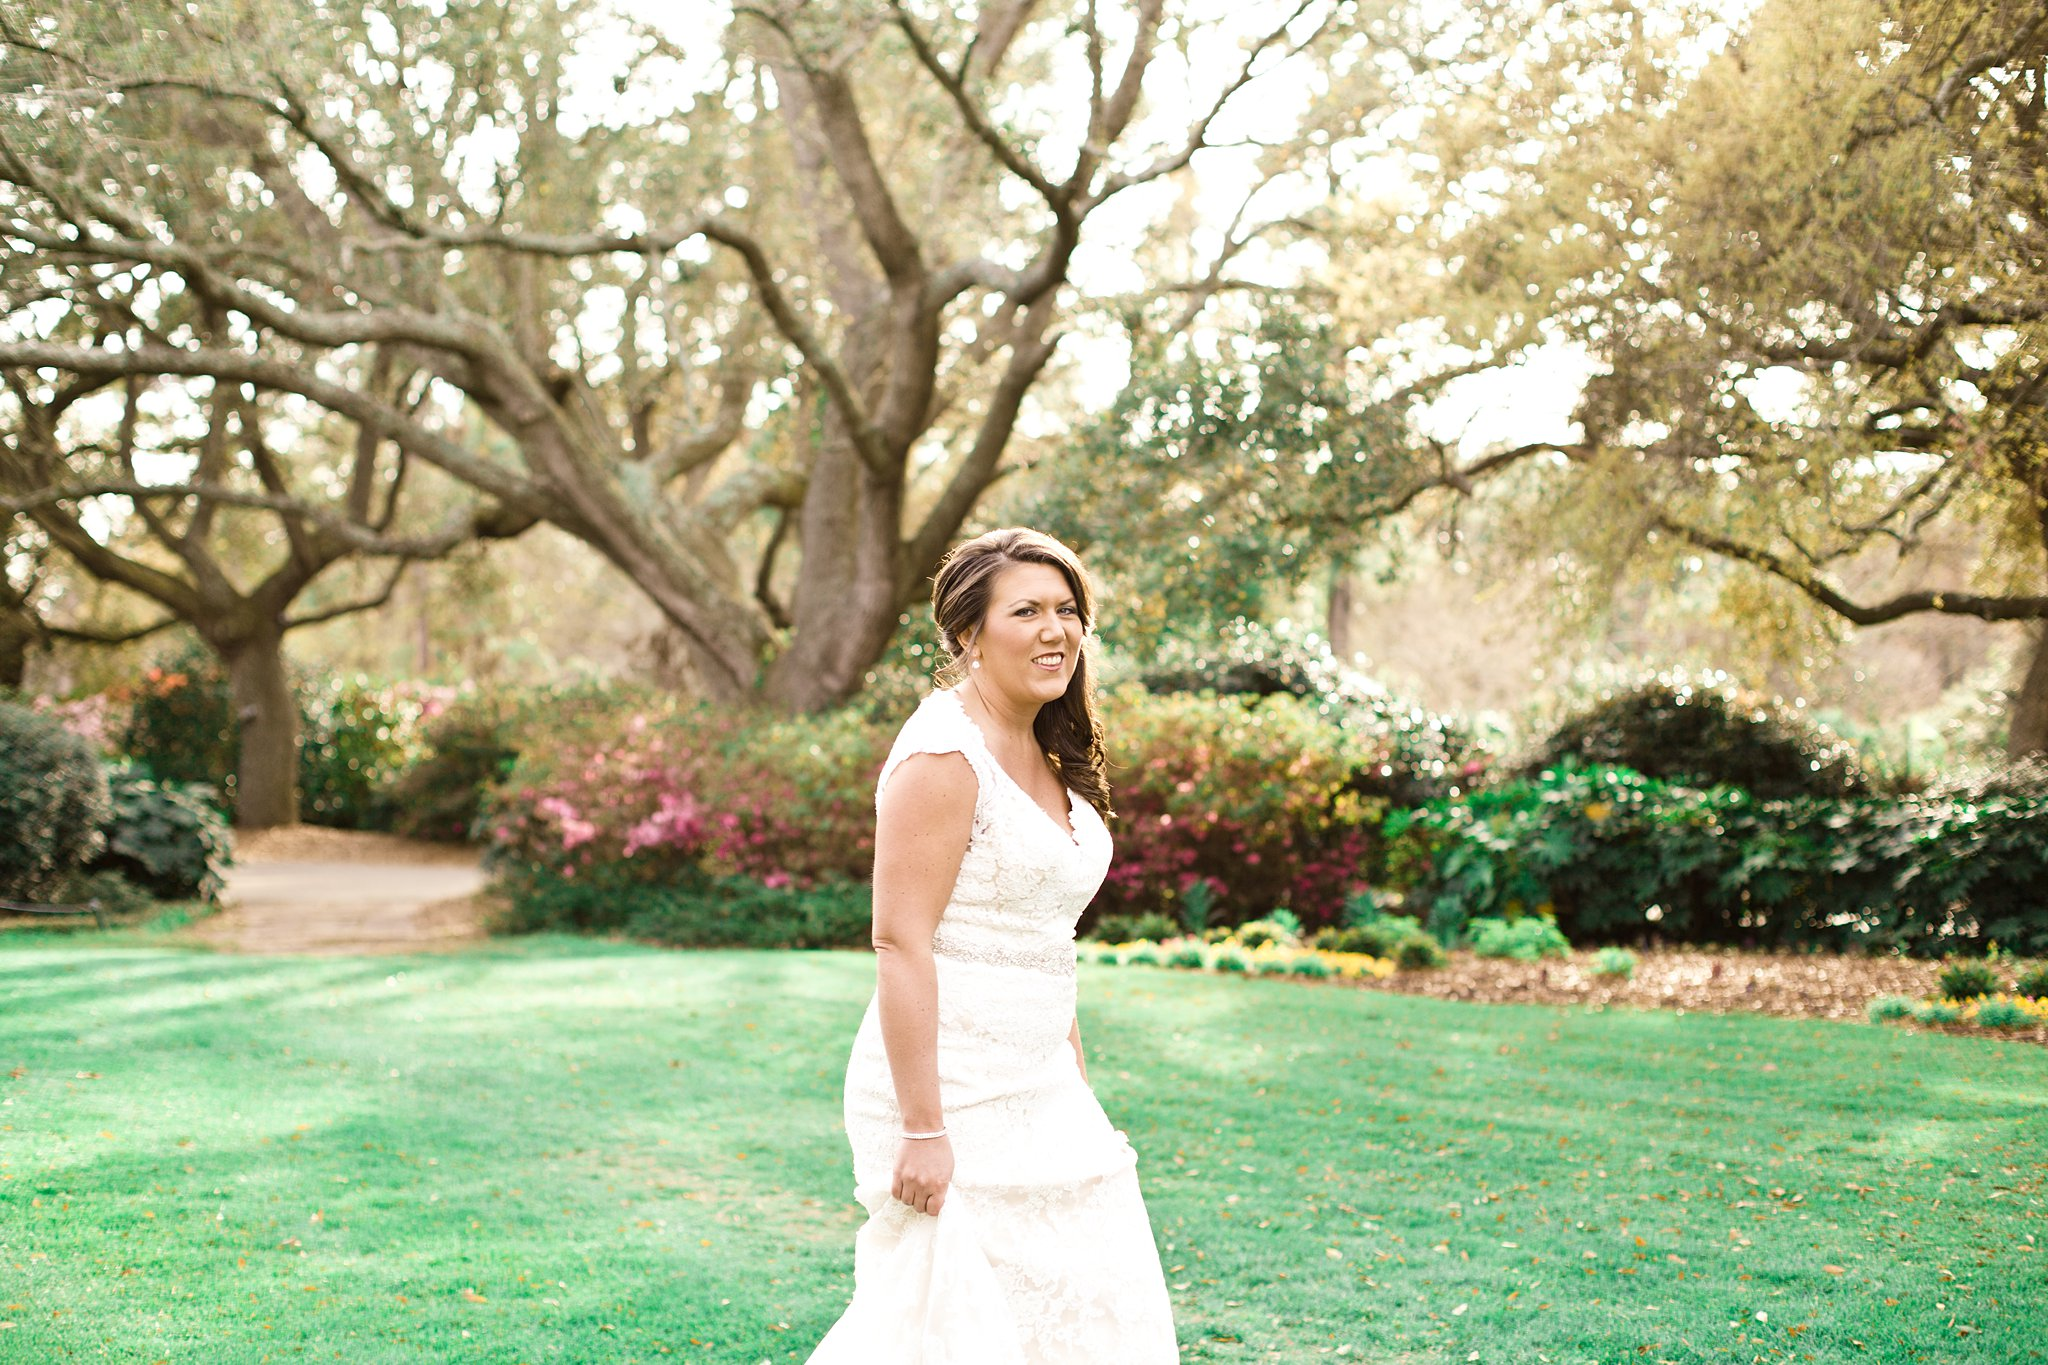 litchfield-golf-country-club-bridal-session-pawleys-island-sc-photos_0115.jpg